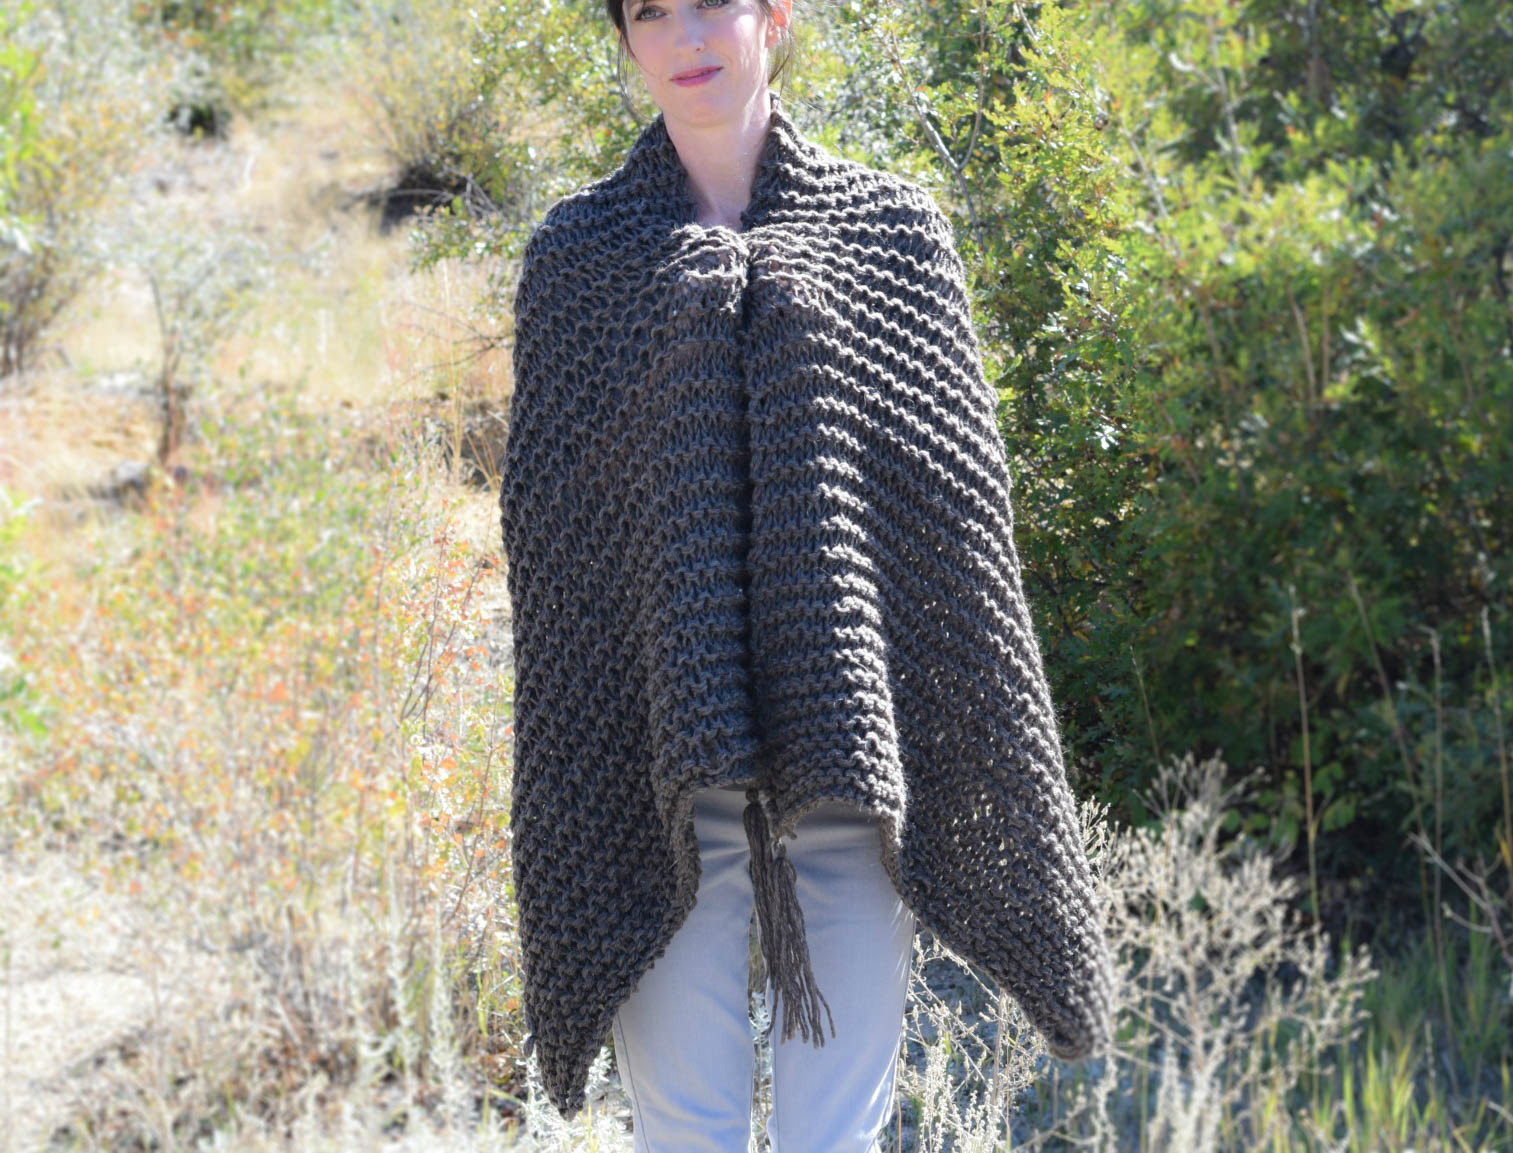 Beginner Knitting Patterns Scarves : Big Beginner Knit Shawl - Scarf Pattern   Mama In A Stitch